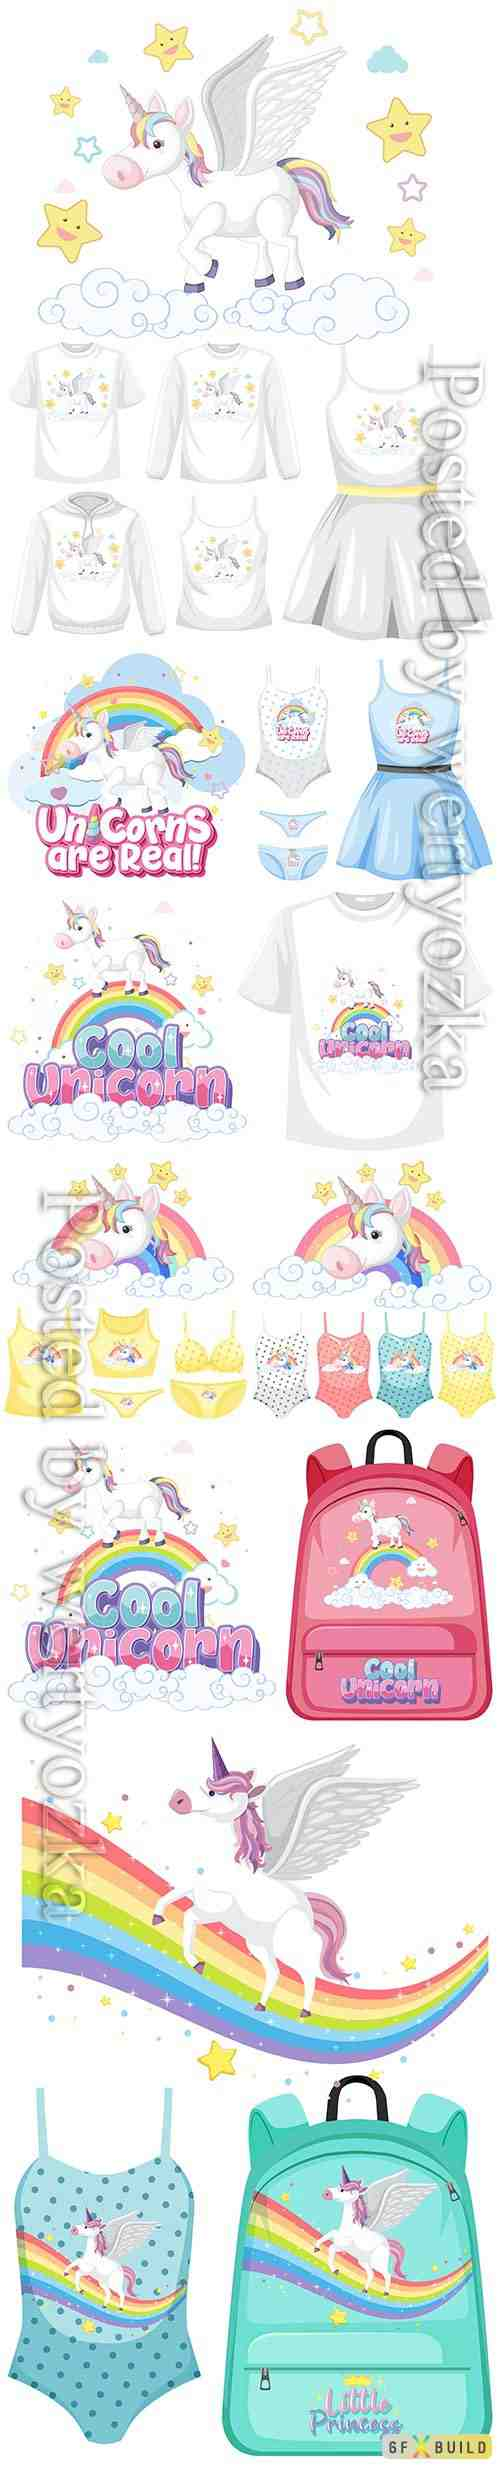 Set of girl outfits, cute unicorn premium vector